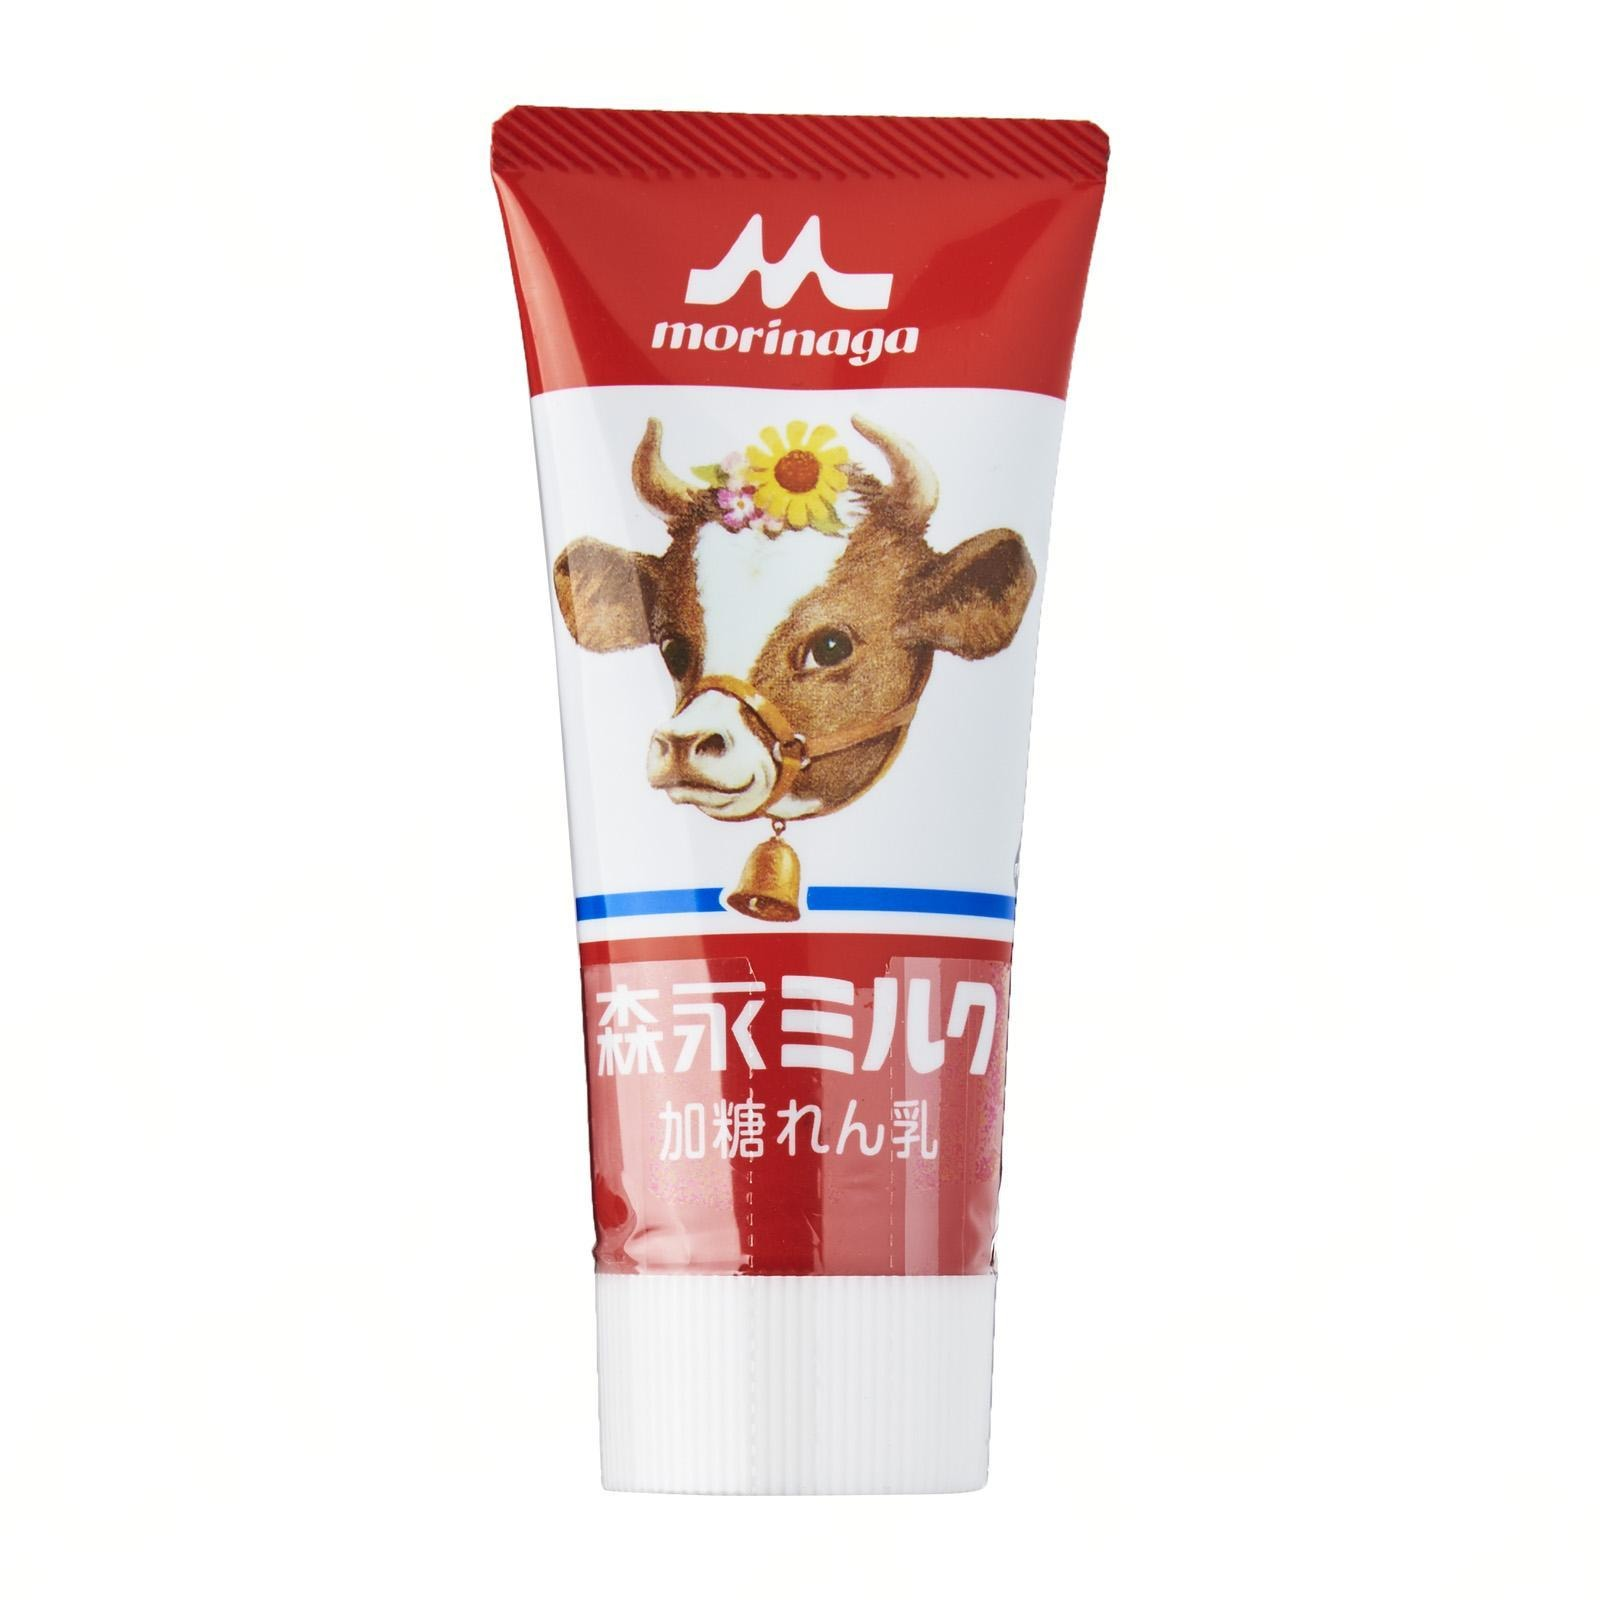 Morinaga Japanese Rennyu Condensed Milk Tube